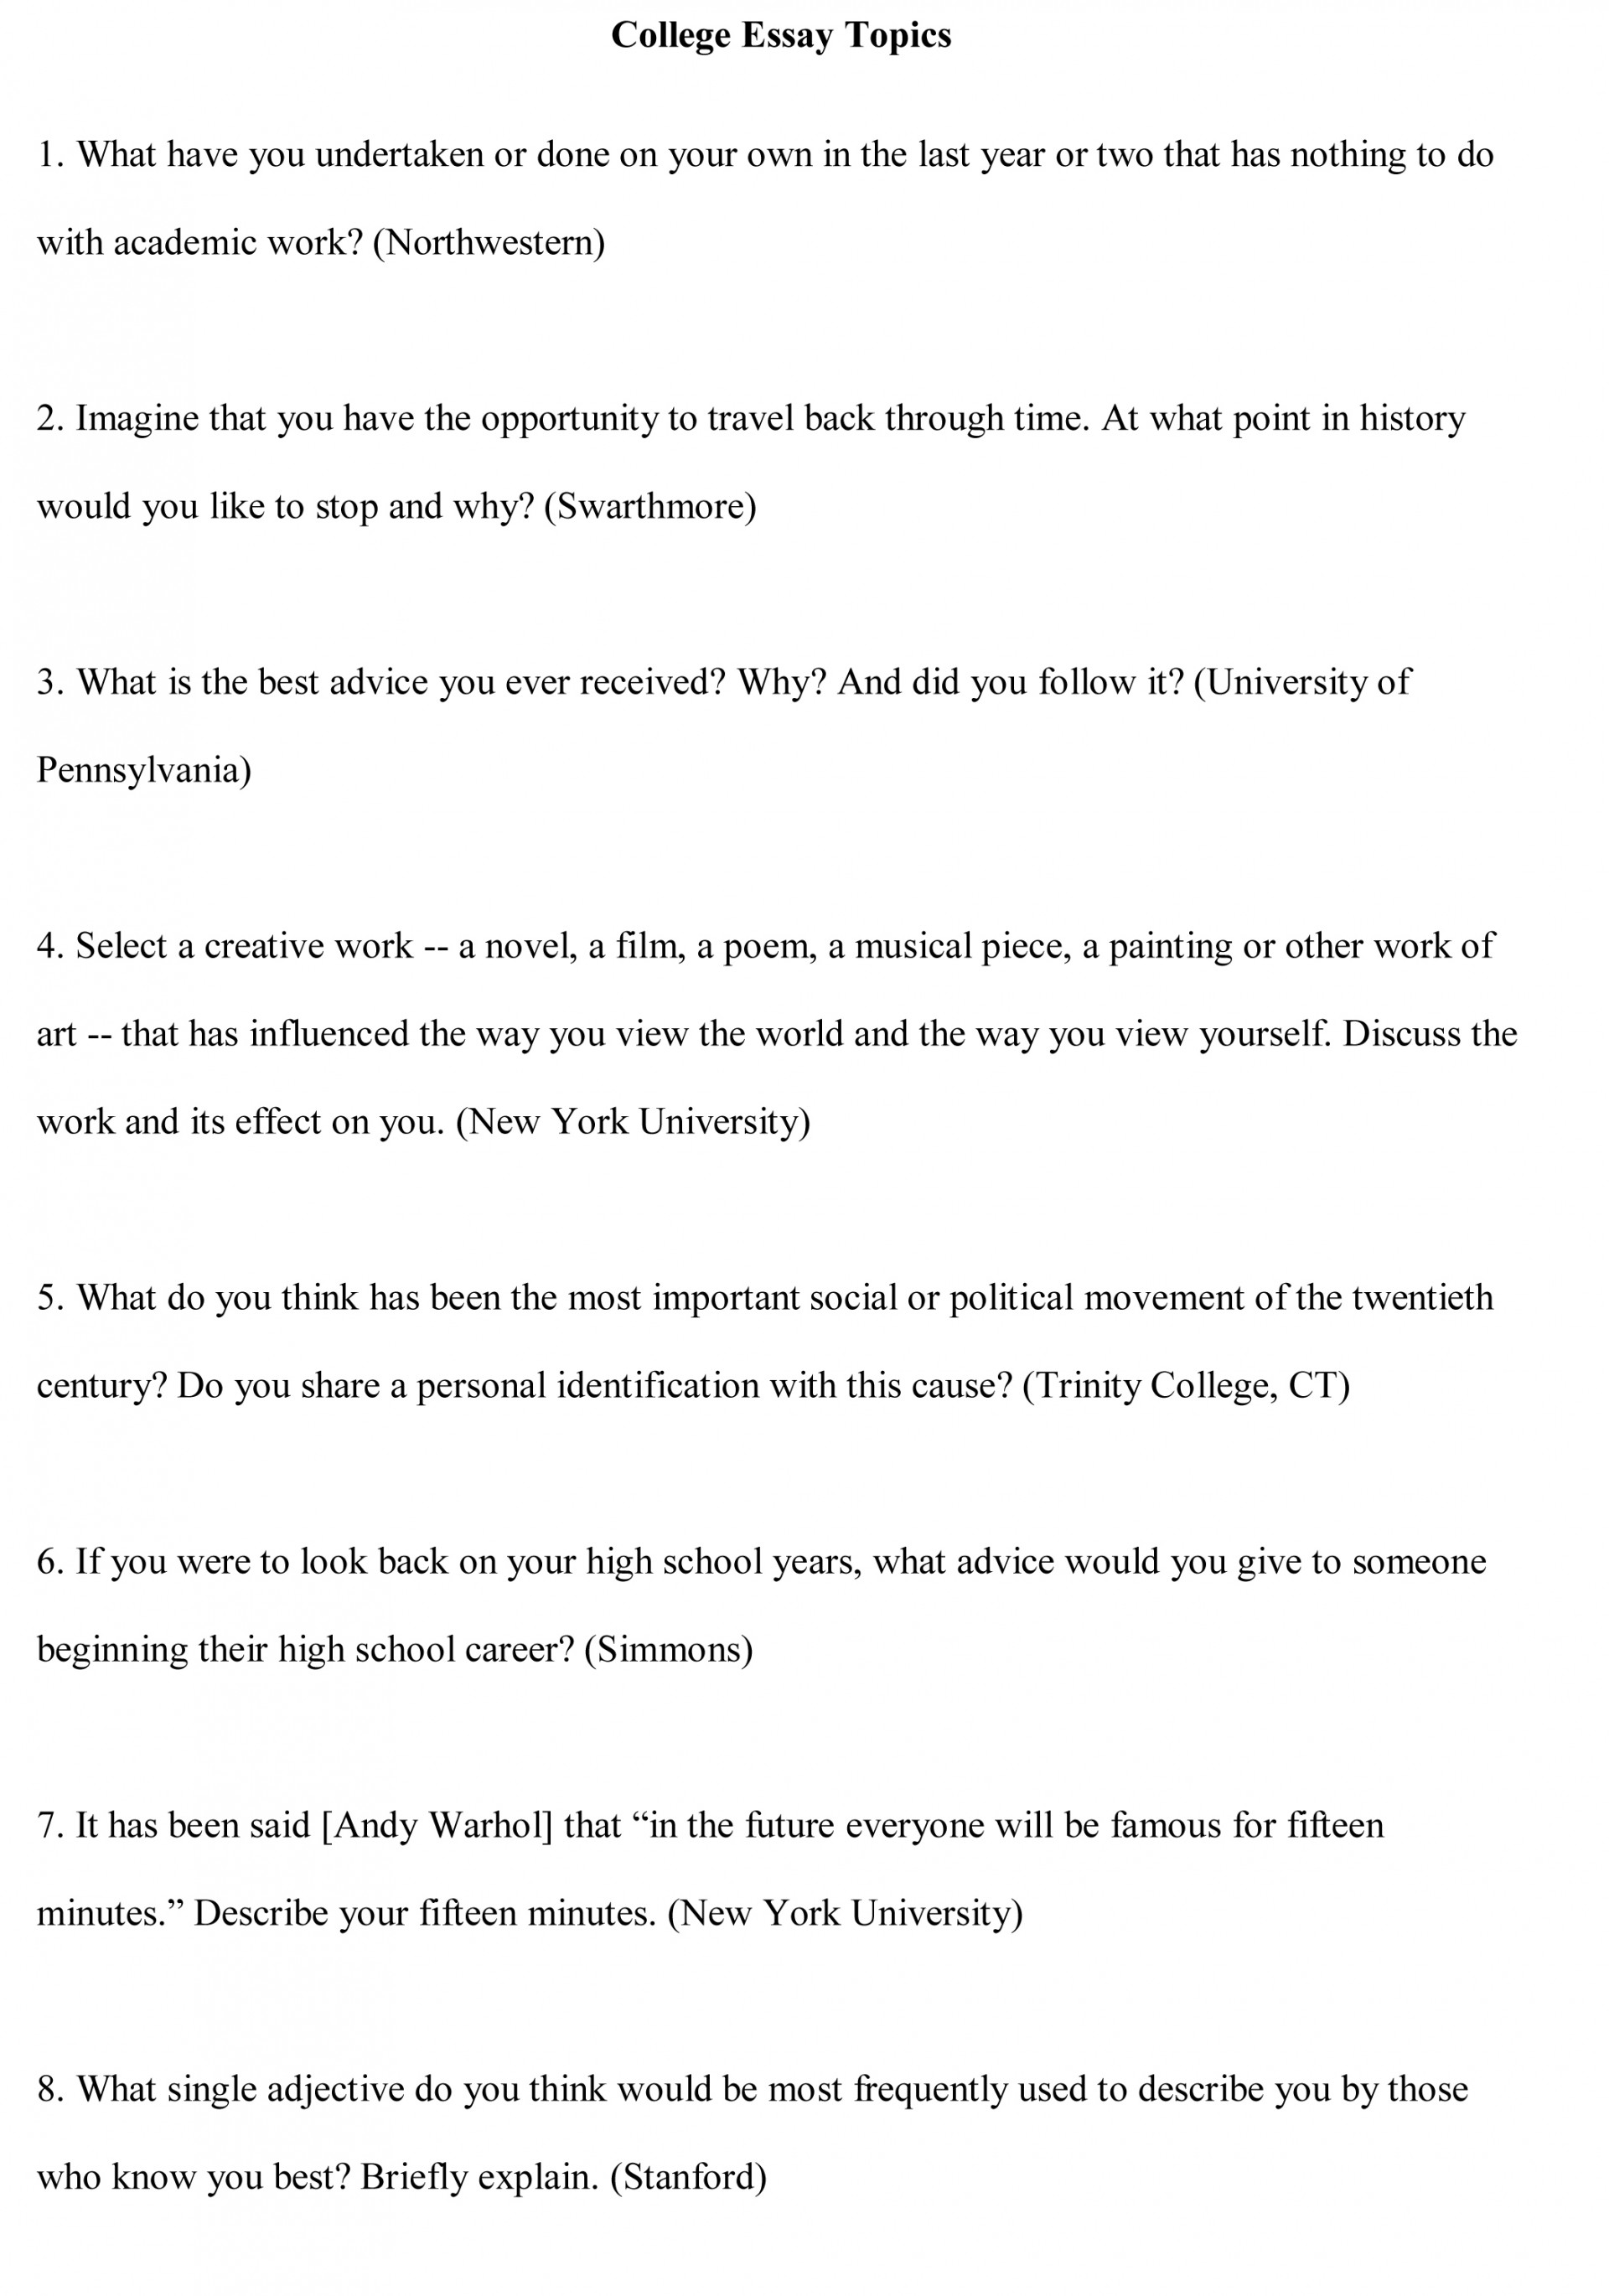 025 College Essay Topics Free Sample1 Prompts For Writing Essays Best Persuasive Opinion 4th Grade 1920